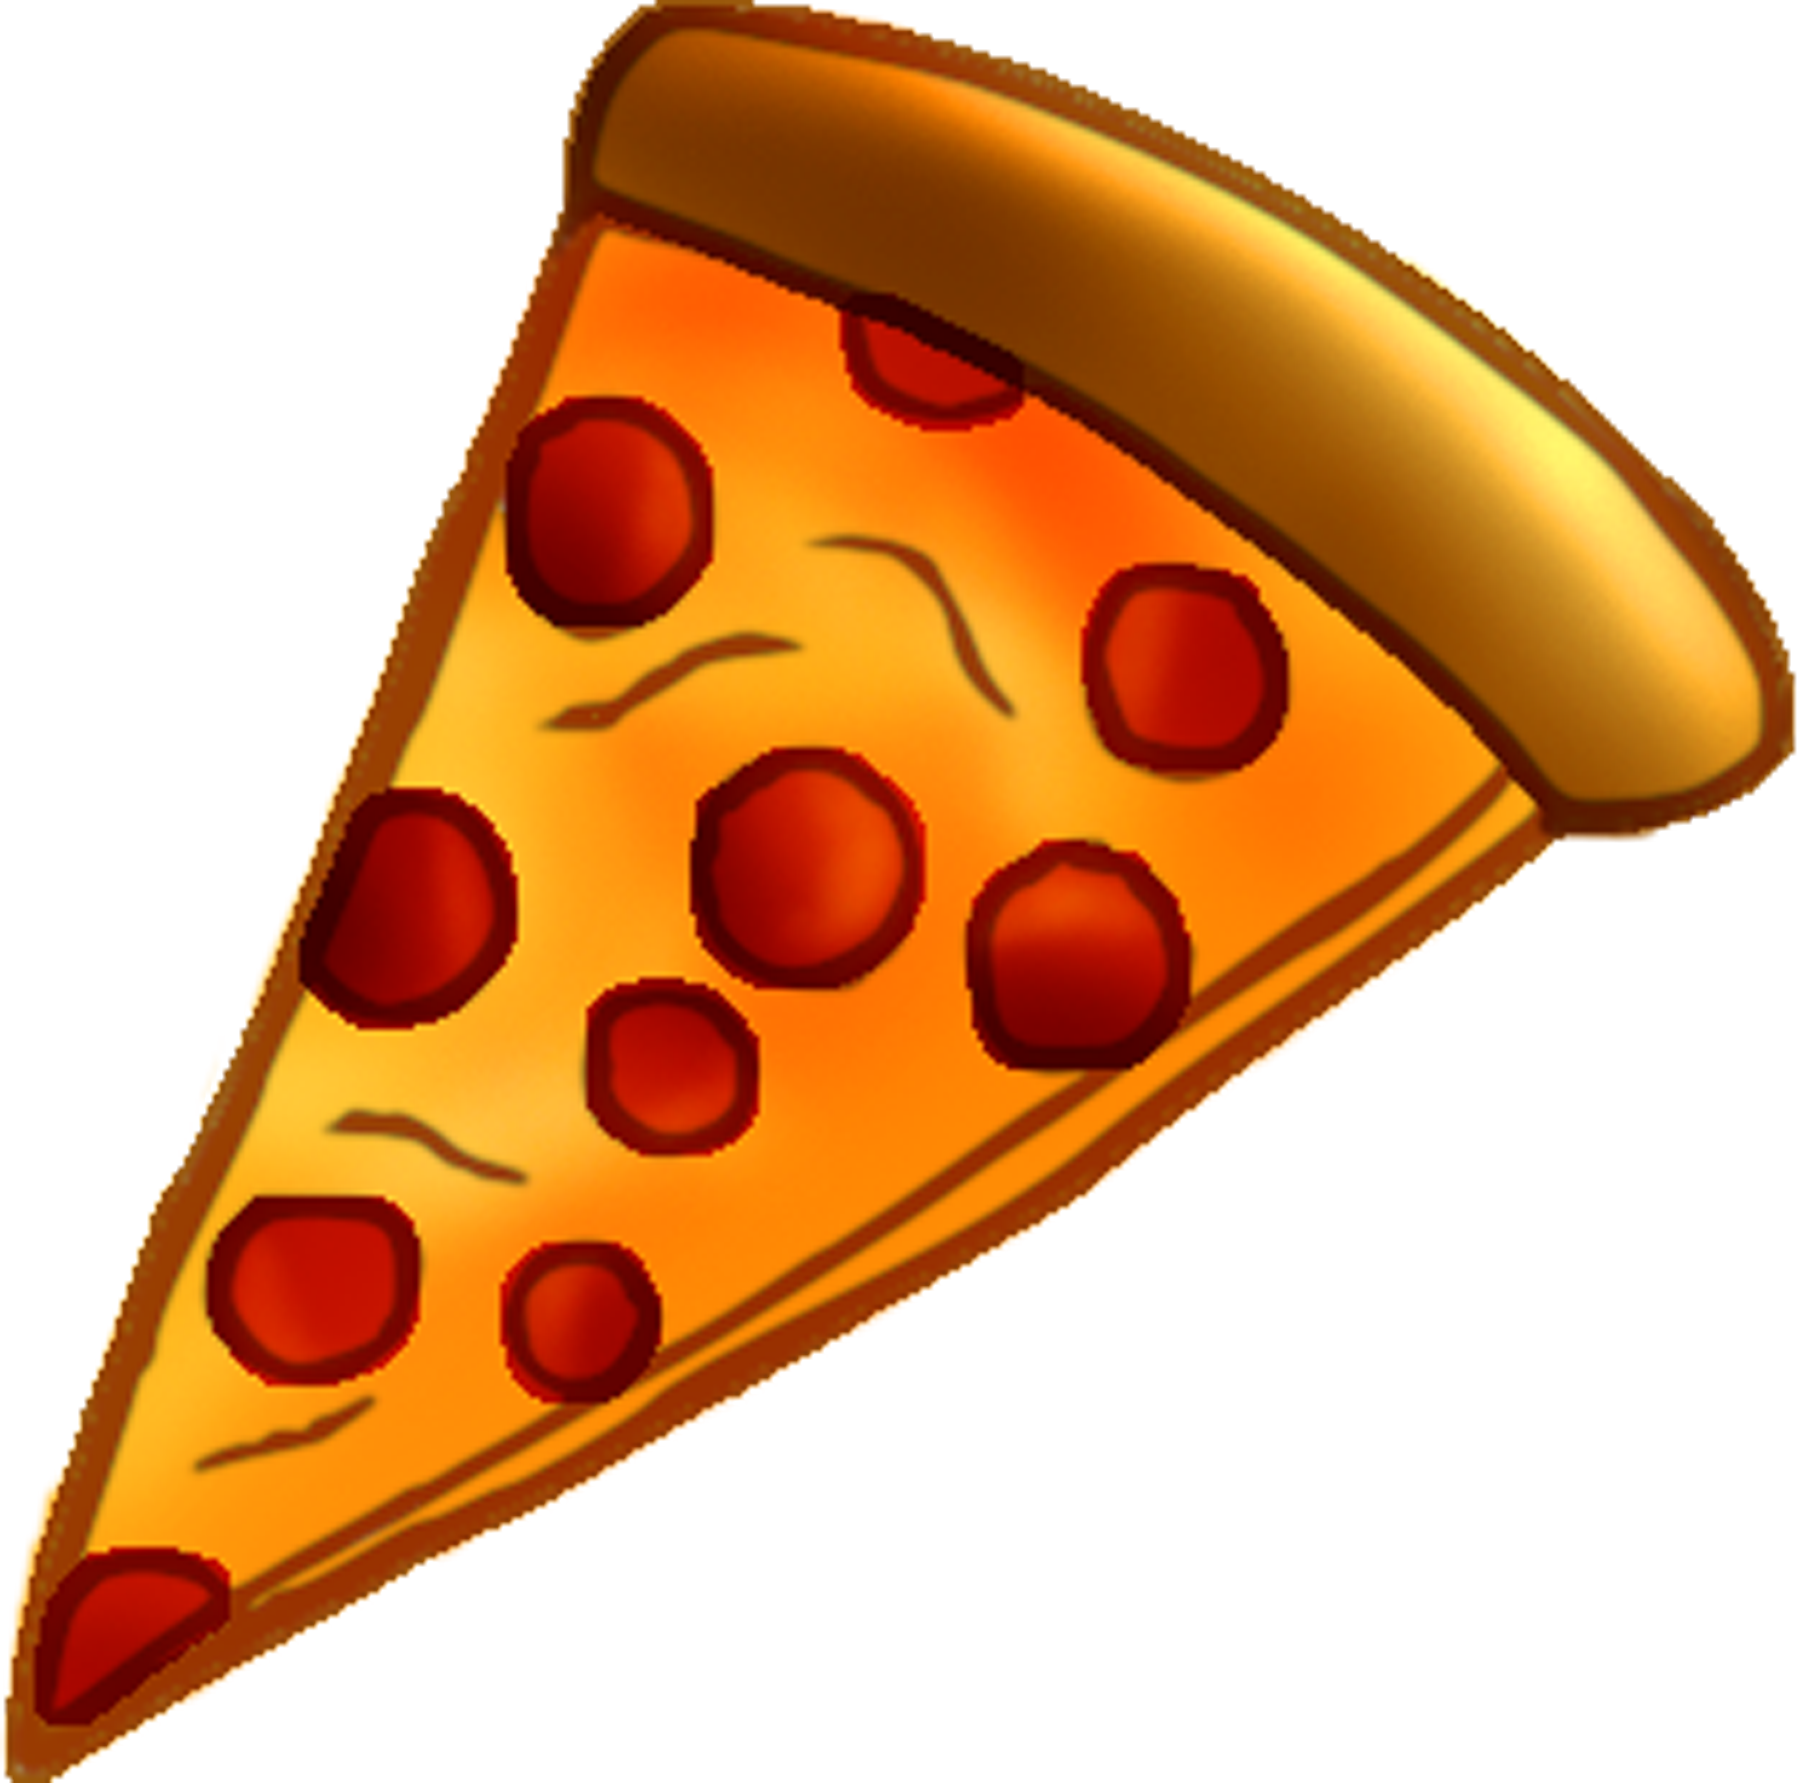 Free pizza clipart images